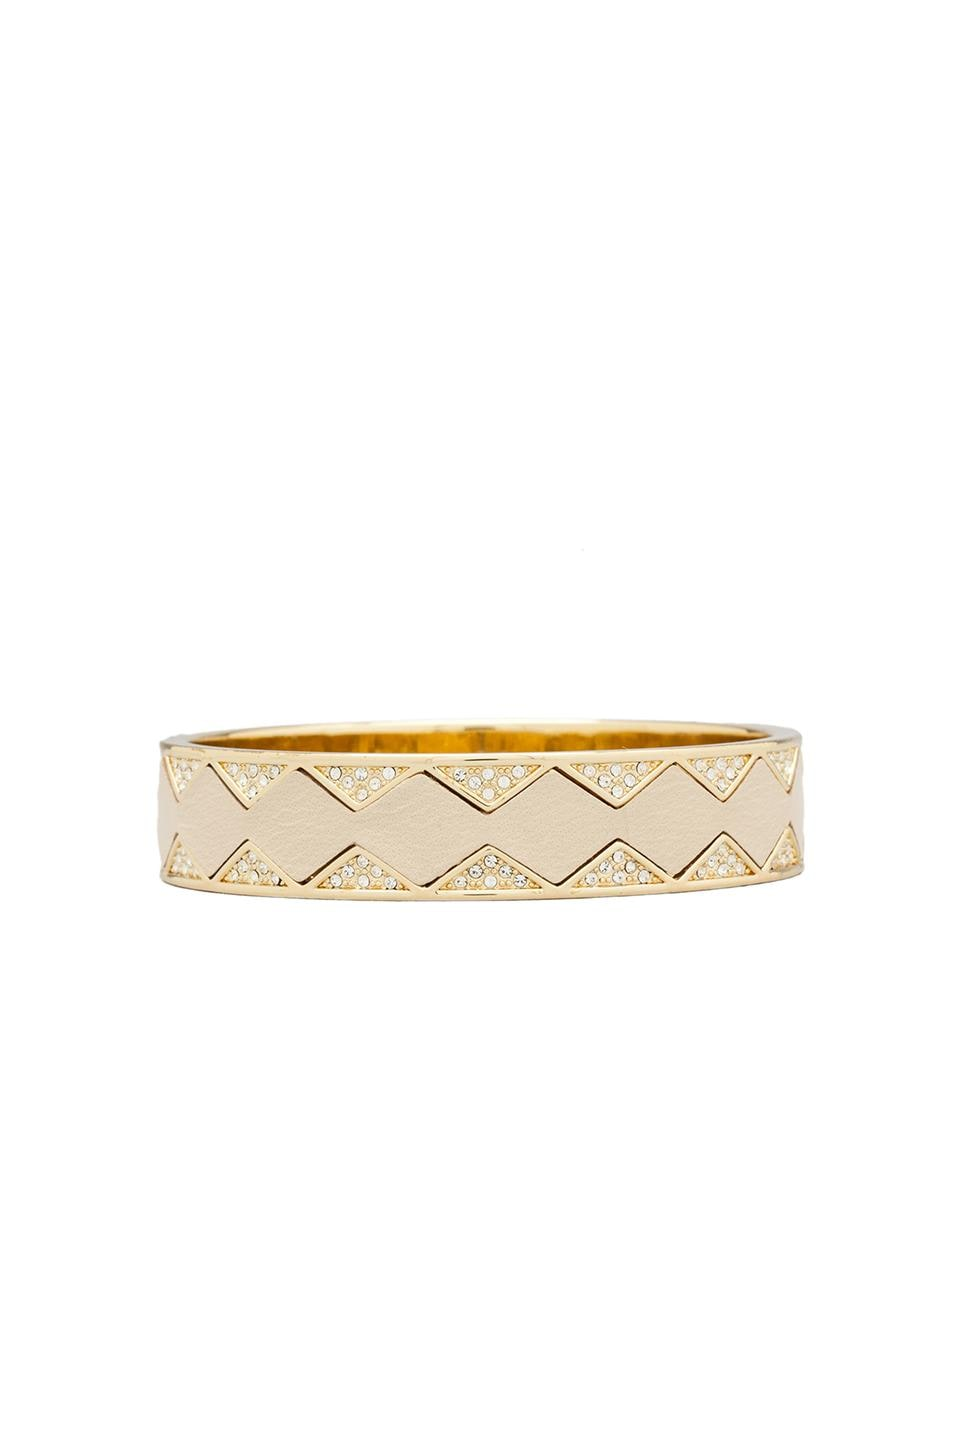 House of Harlow 1960 House of Harlow Sunburst Bangle in Gold Tone Cream